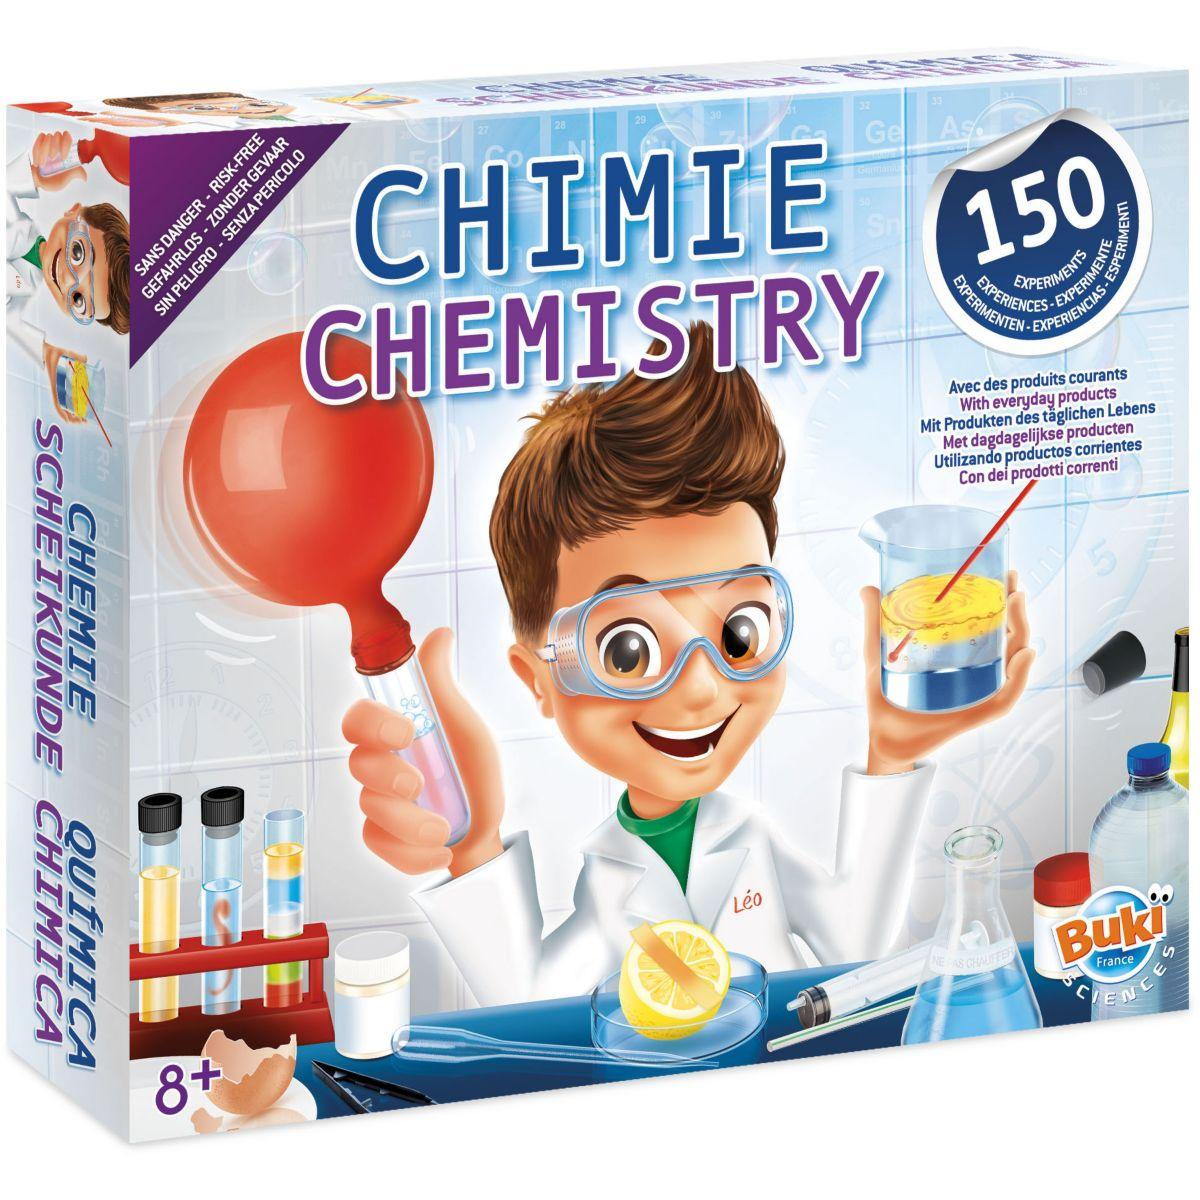 Jeu �ducatif buki chimie sans danger - 150 exp�riences (photo)